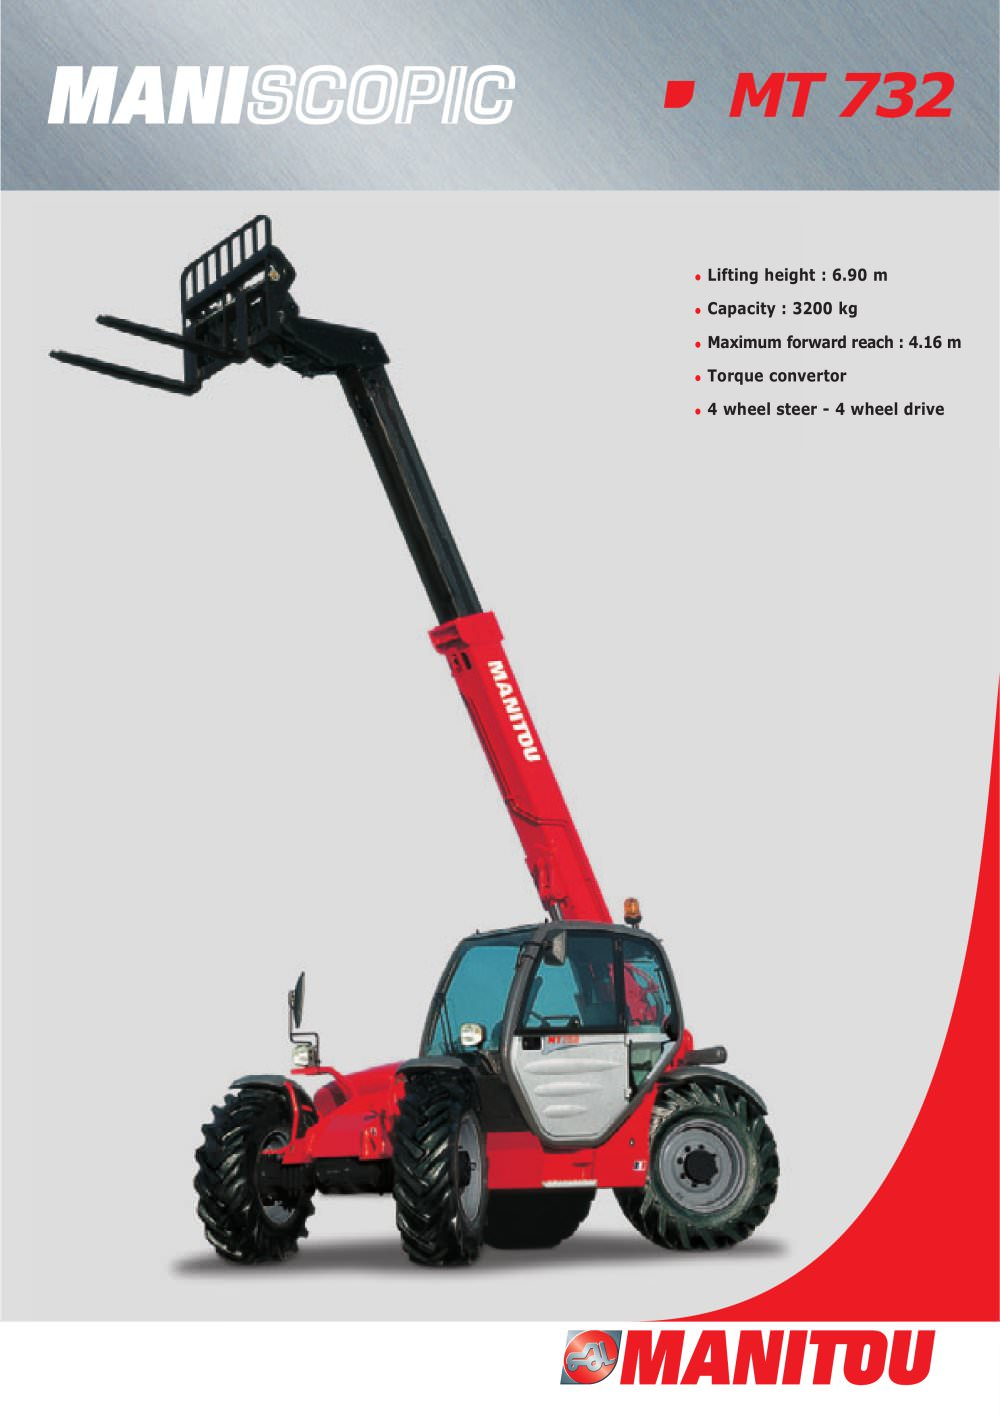 mt 732 manitou pdf catalogue technical documentation brochure rh pdf directindustry com manitou mt 1440 parts manual manitou mt 1440 sl manual